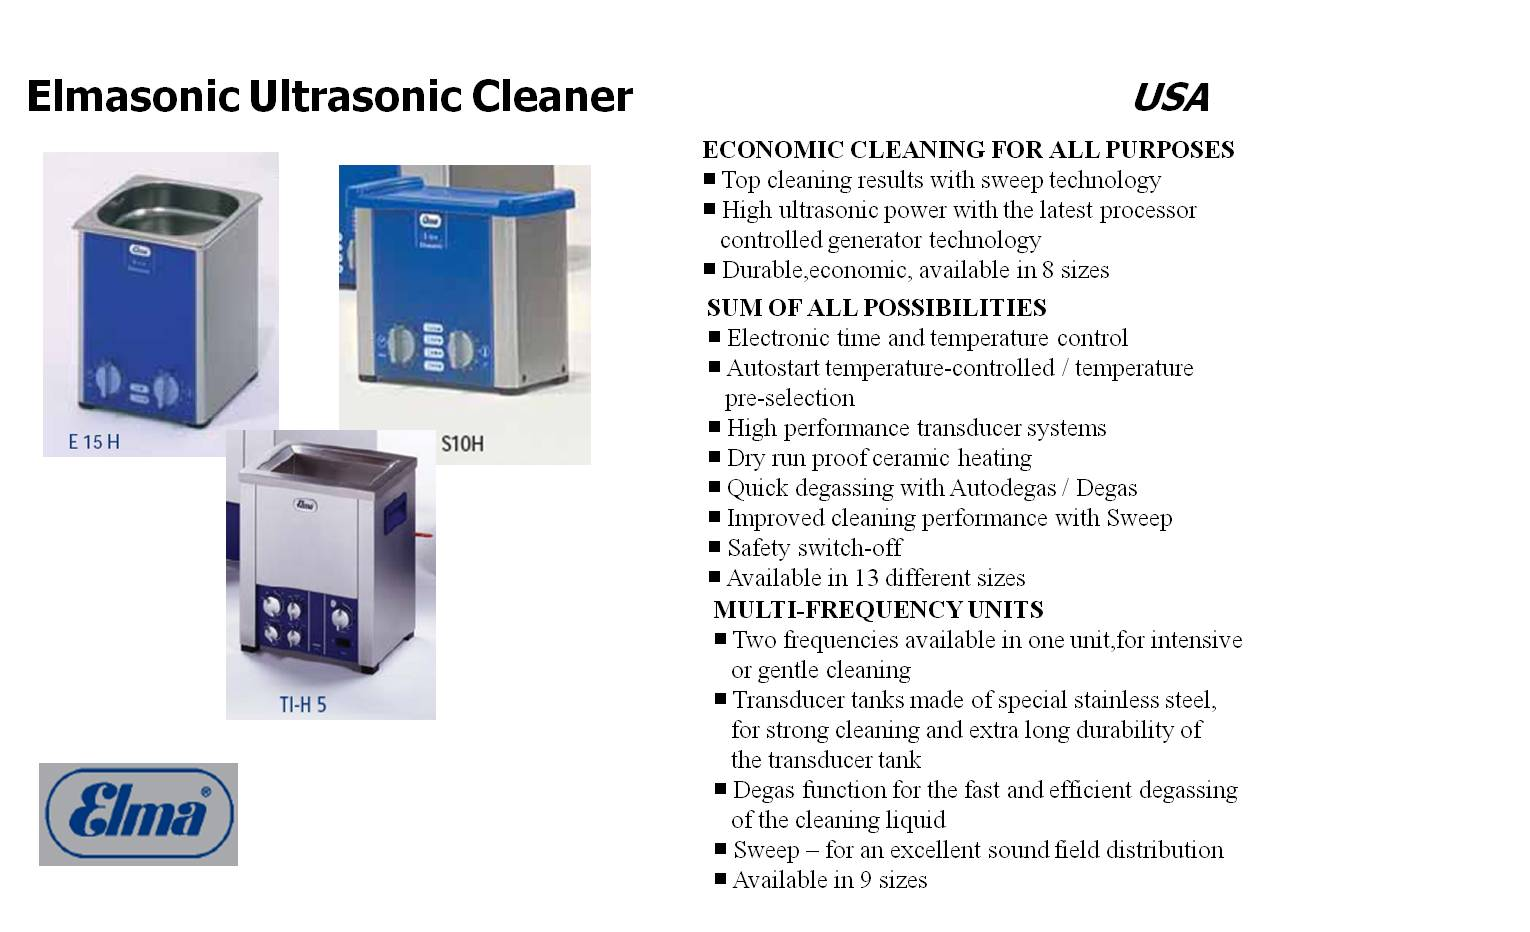 Telesemi Products - Elmasonic Cleaner